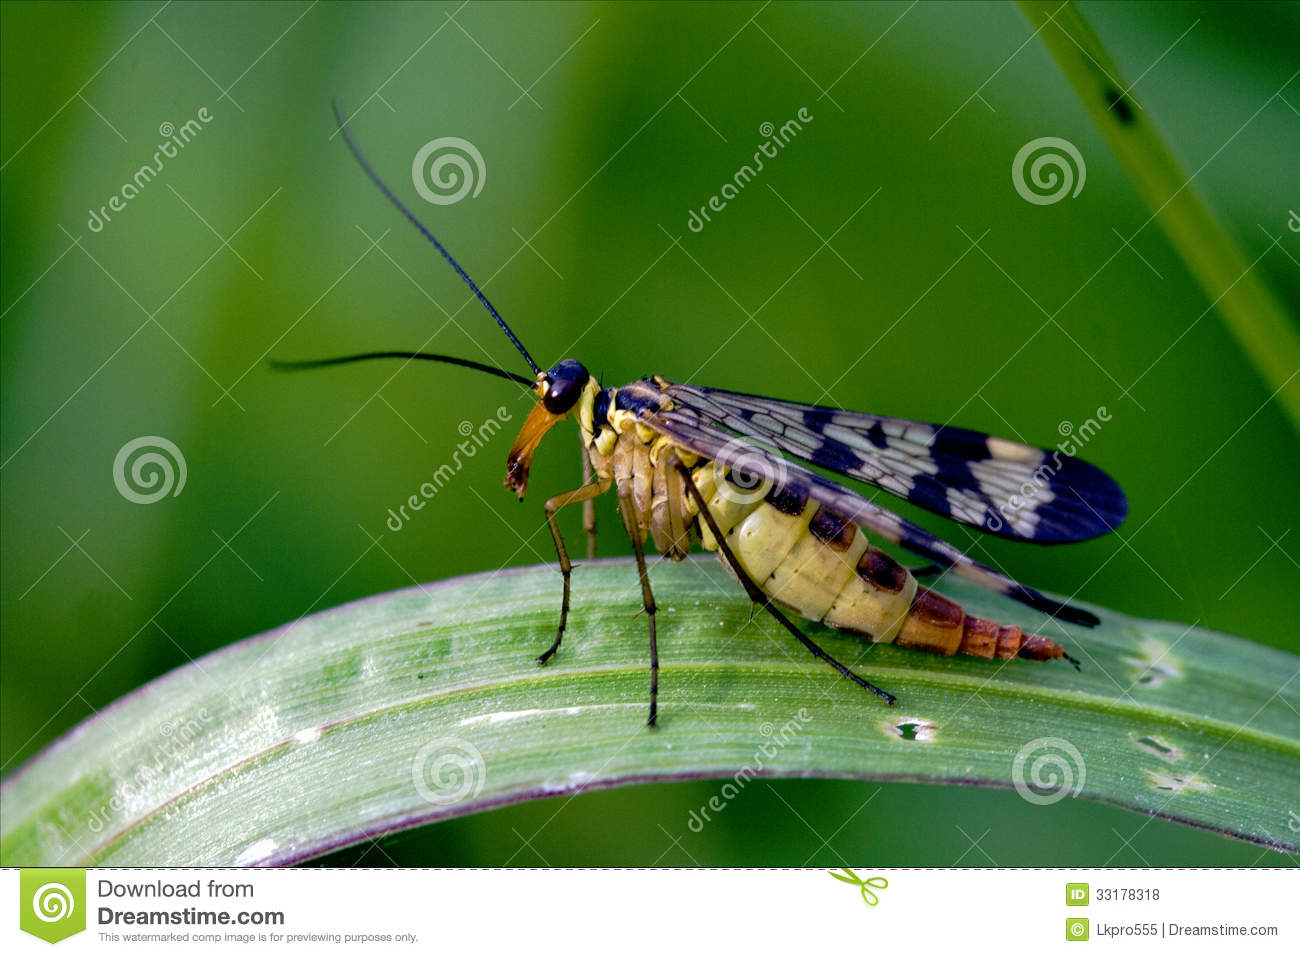 Scorpion Fly Mecoptera Panorpa Panorpidae Royalty Free Stock Photo.